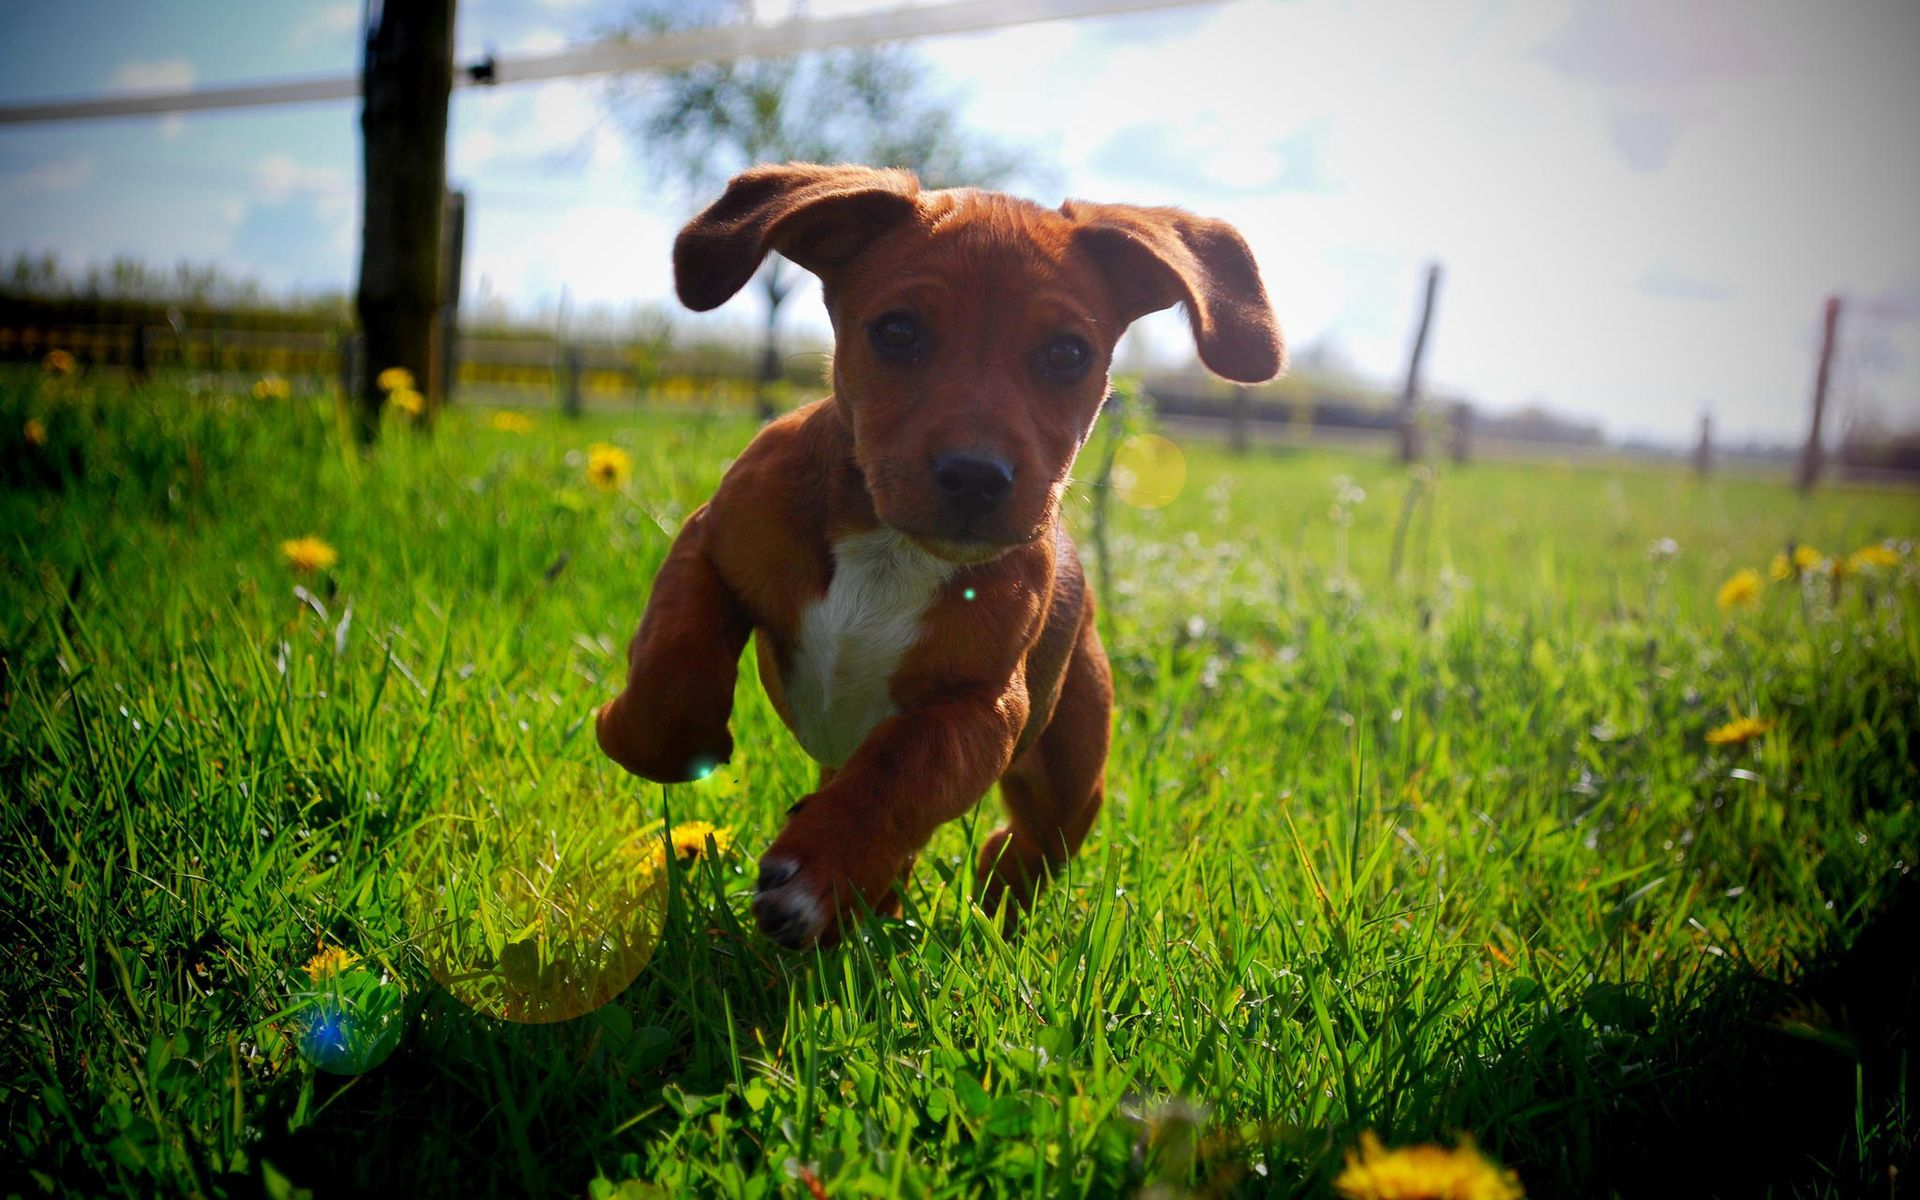 A Cute Brown Puppy Running In The Grass Cute Animals Super Cute Dogs Cute Dog Wallpaper